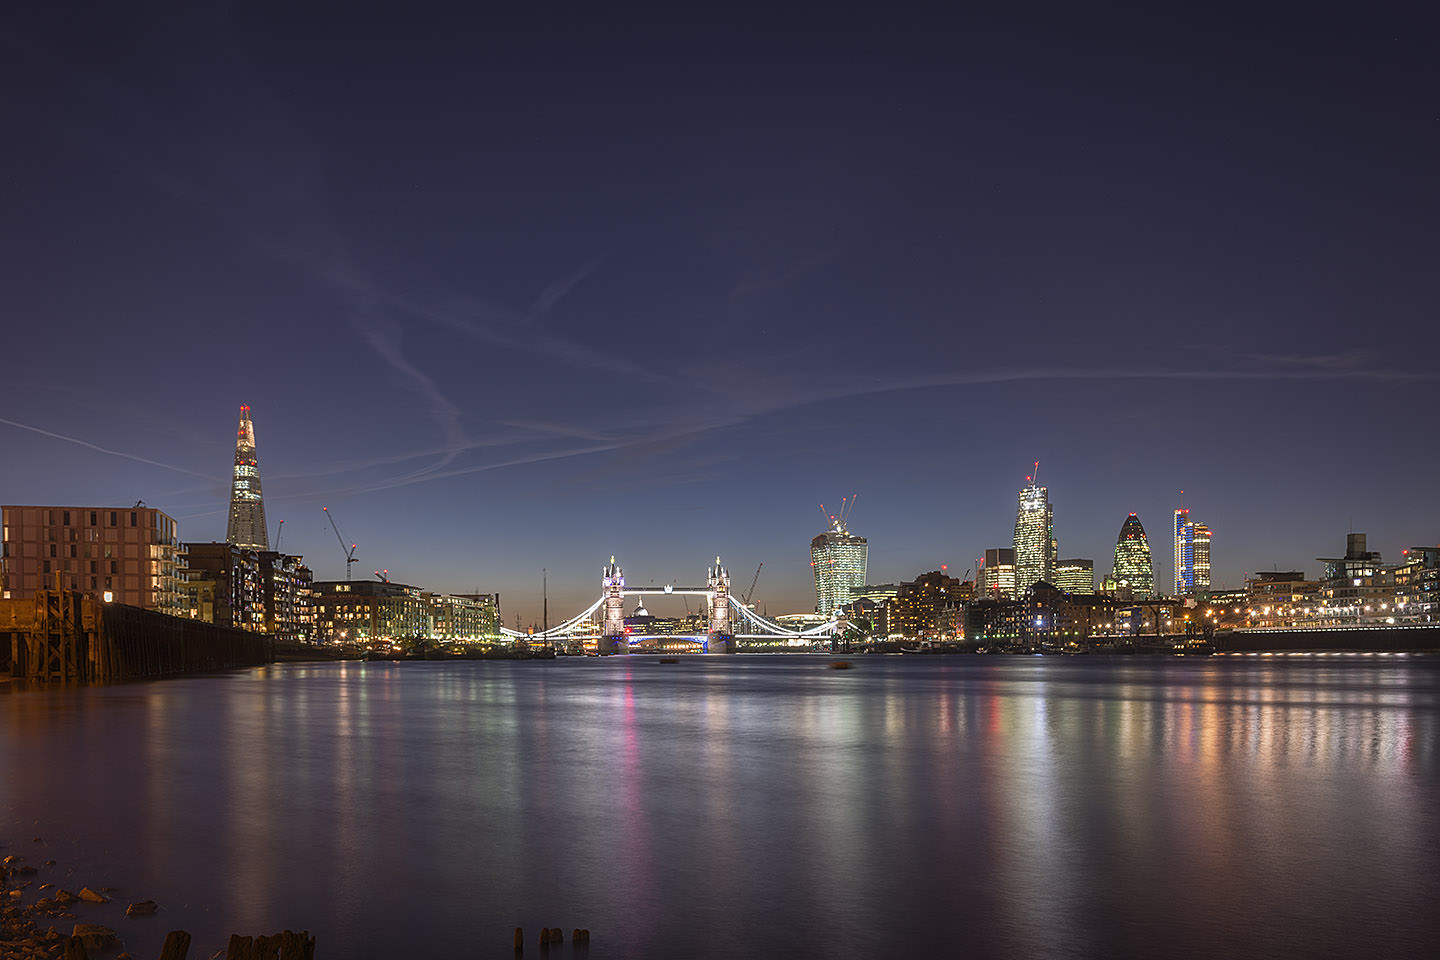 Photograph of Tower Bridge and City Skyline 17